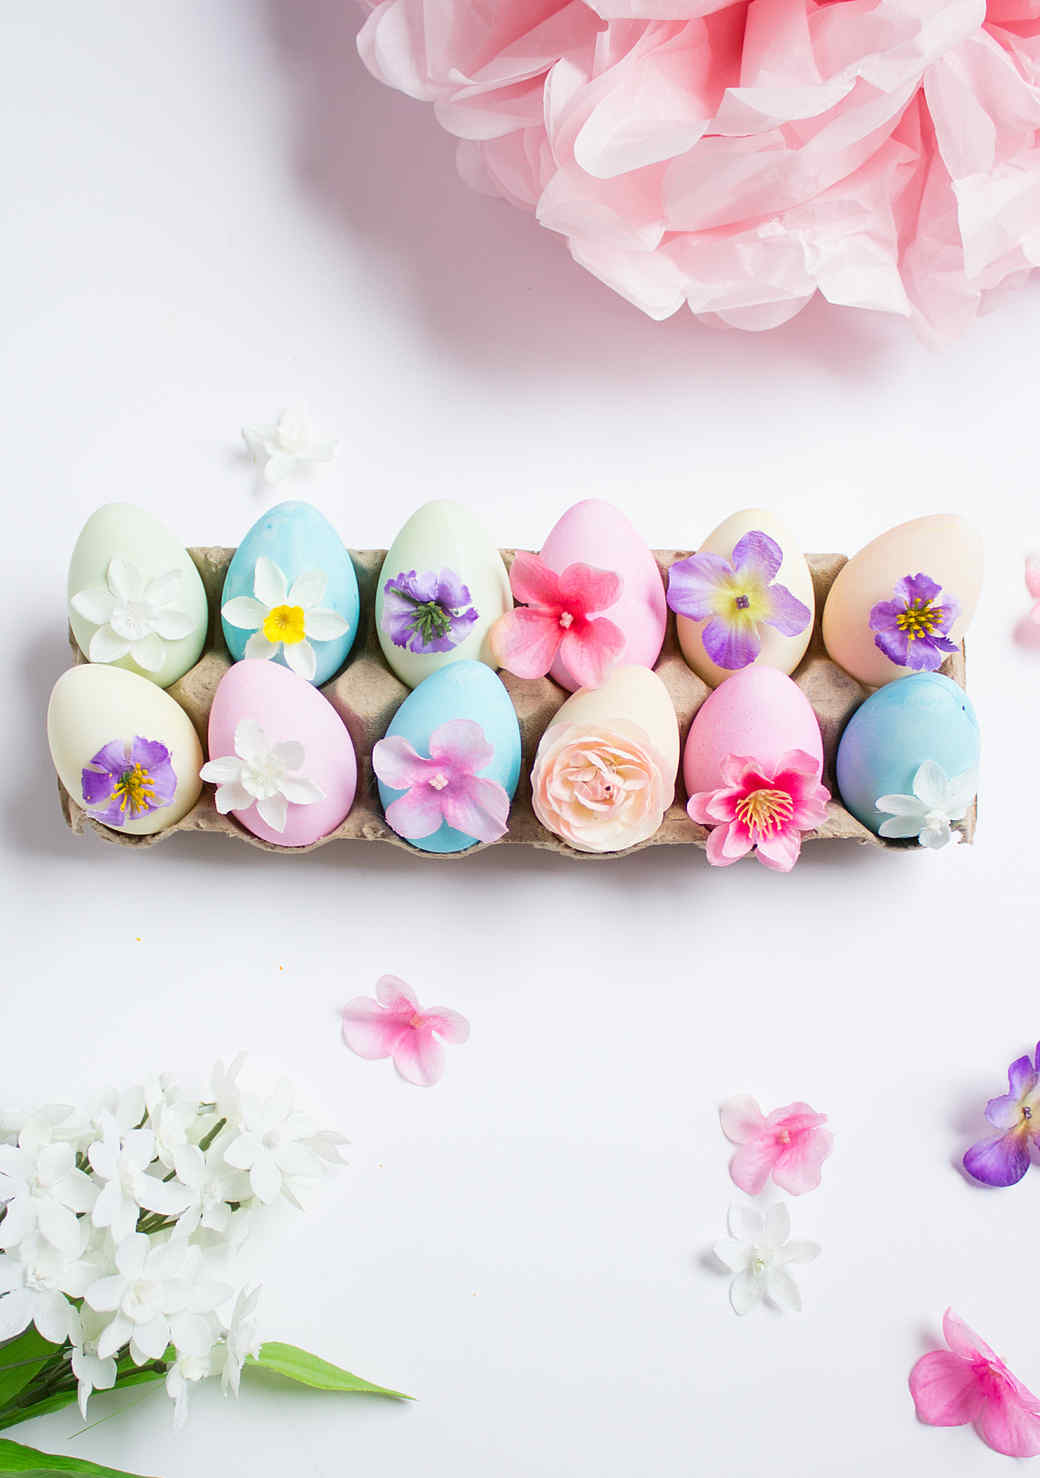 floral-easter-eggs-1215.jpg (skyword:212424)